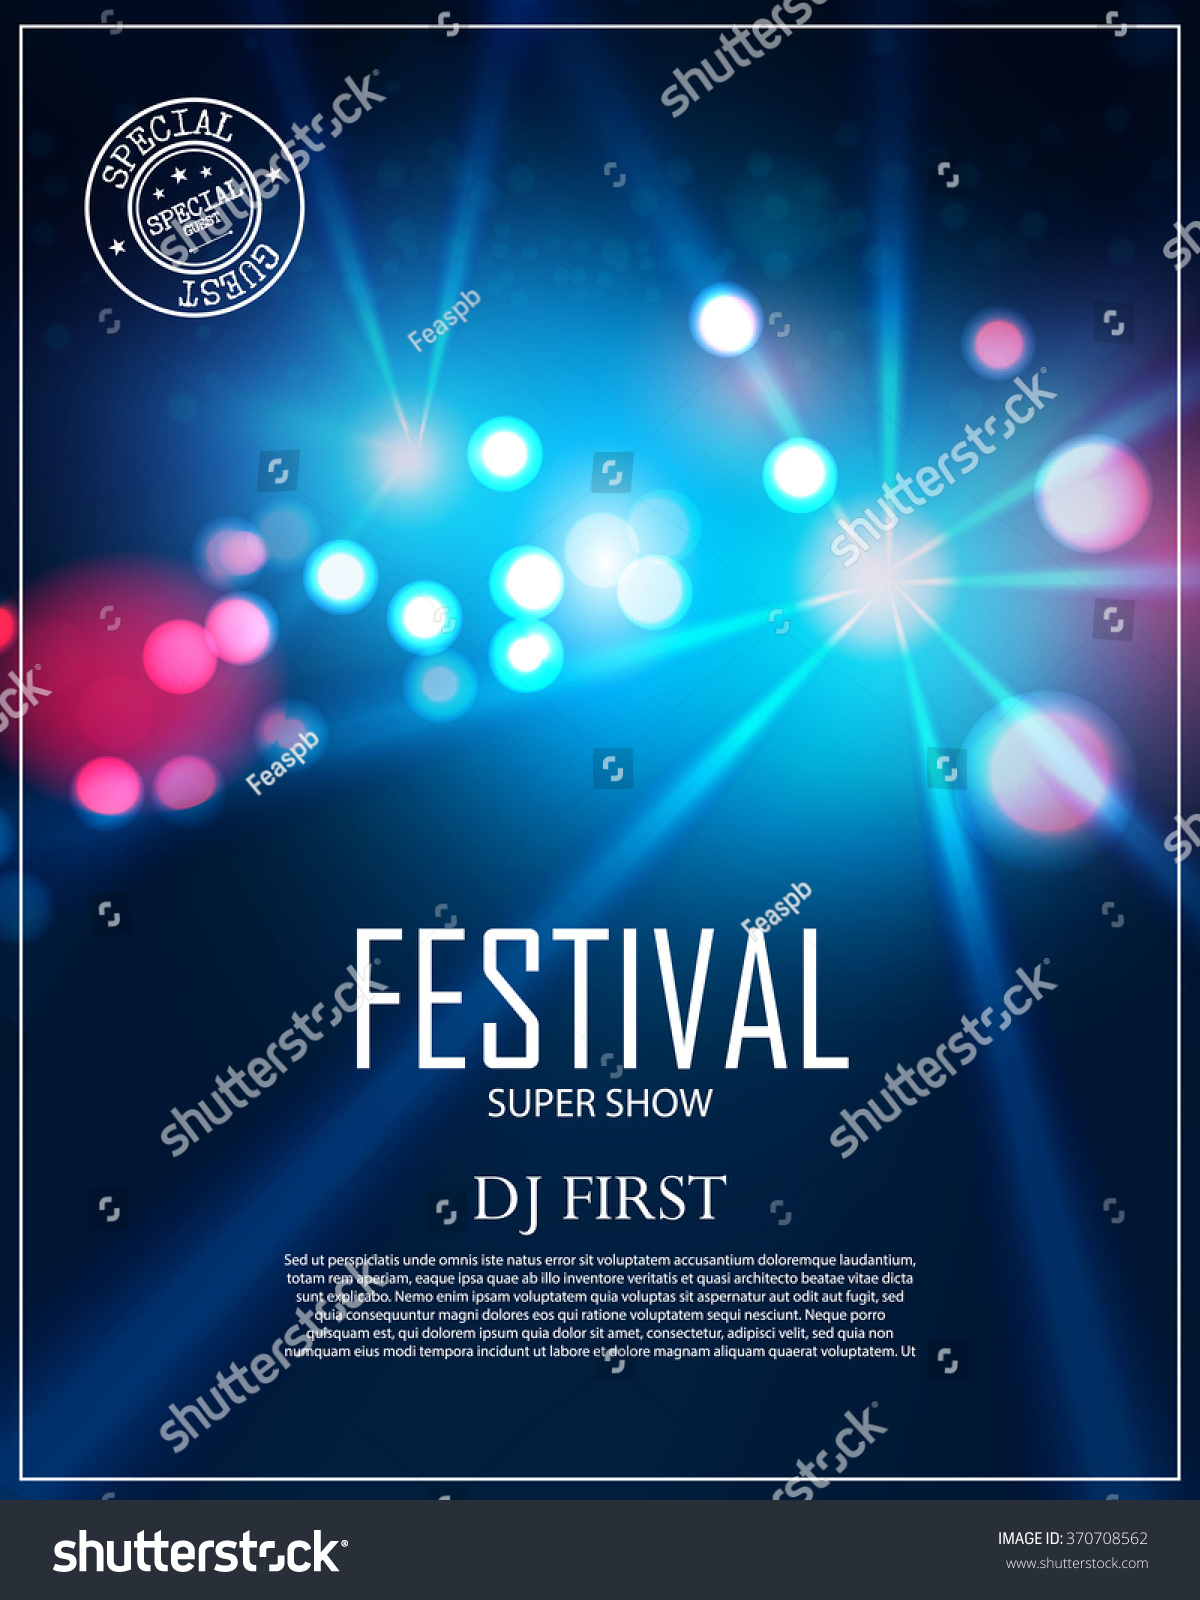 Festival Poster Template with Spotlights u0026 Bokeh. Concert, Party ...